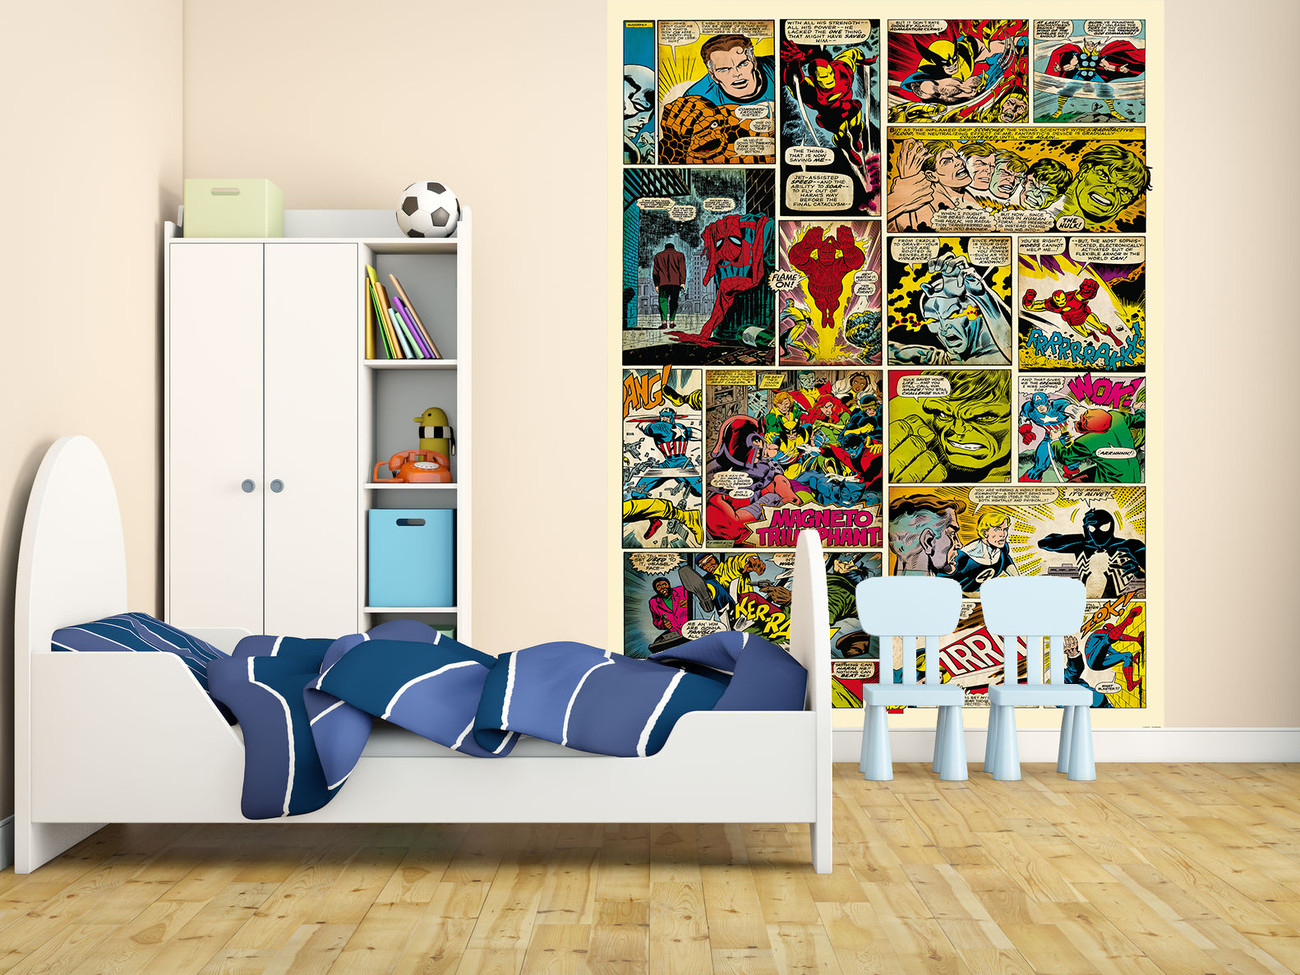 Avengers comic marvel wall mural buy at europosters for Avengers wall mural uk